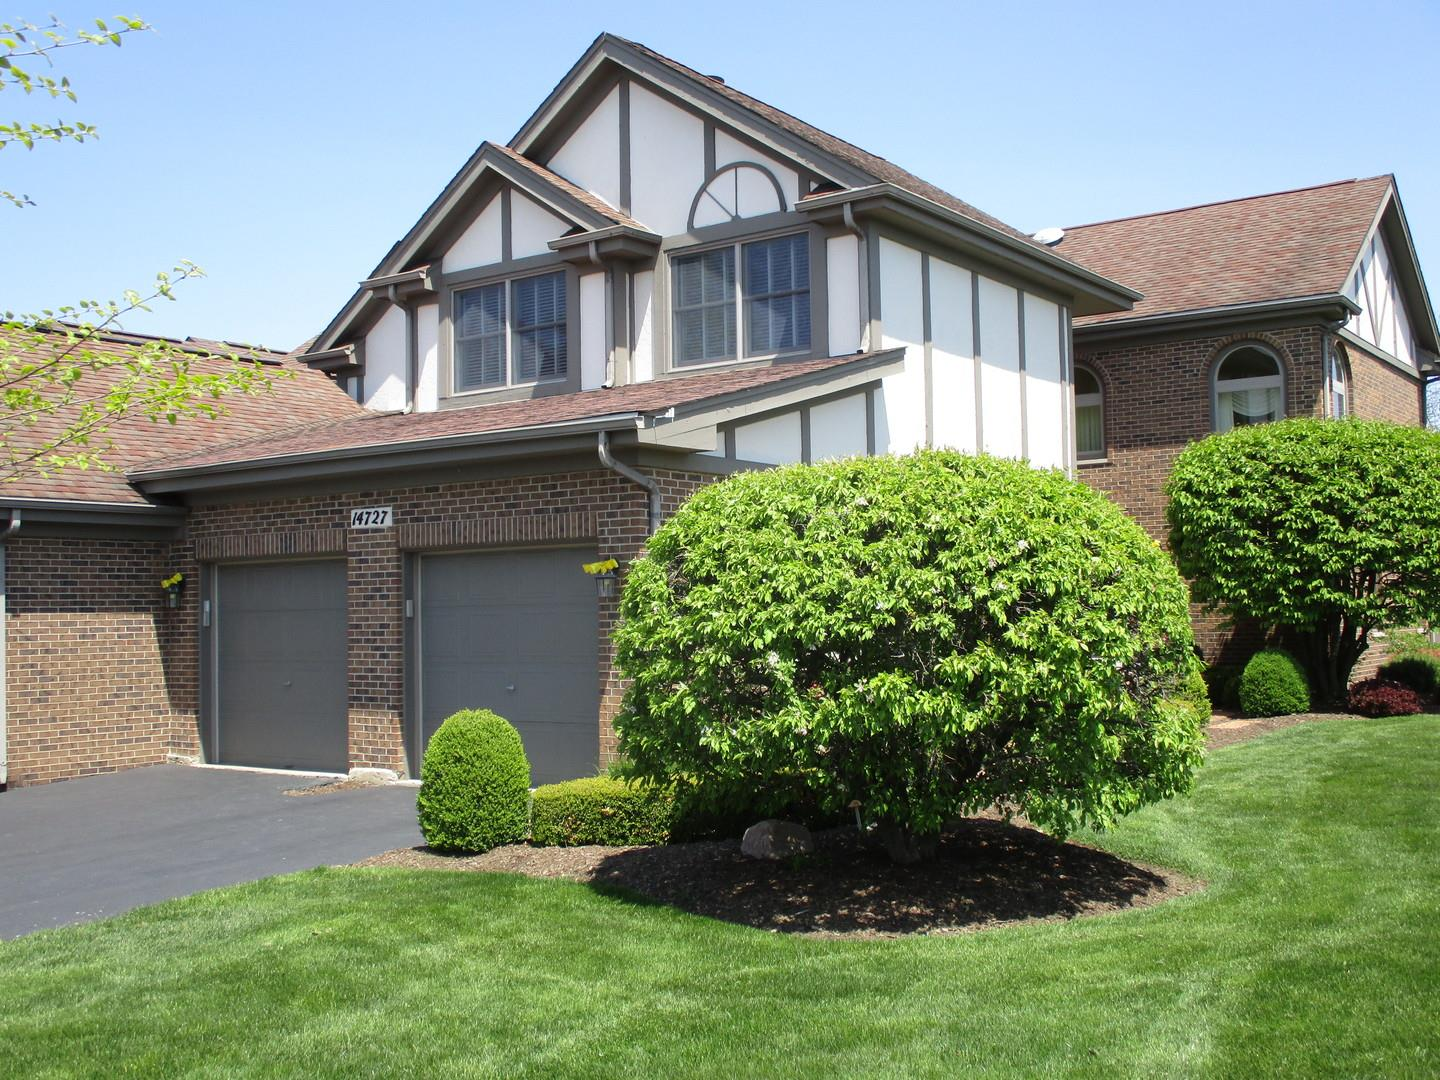 14727 Hollow Tree Road #0, Orland Park, IL 60462 - #: 10716319